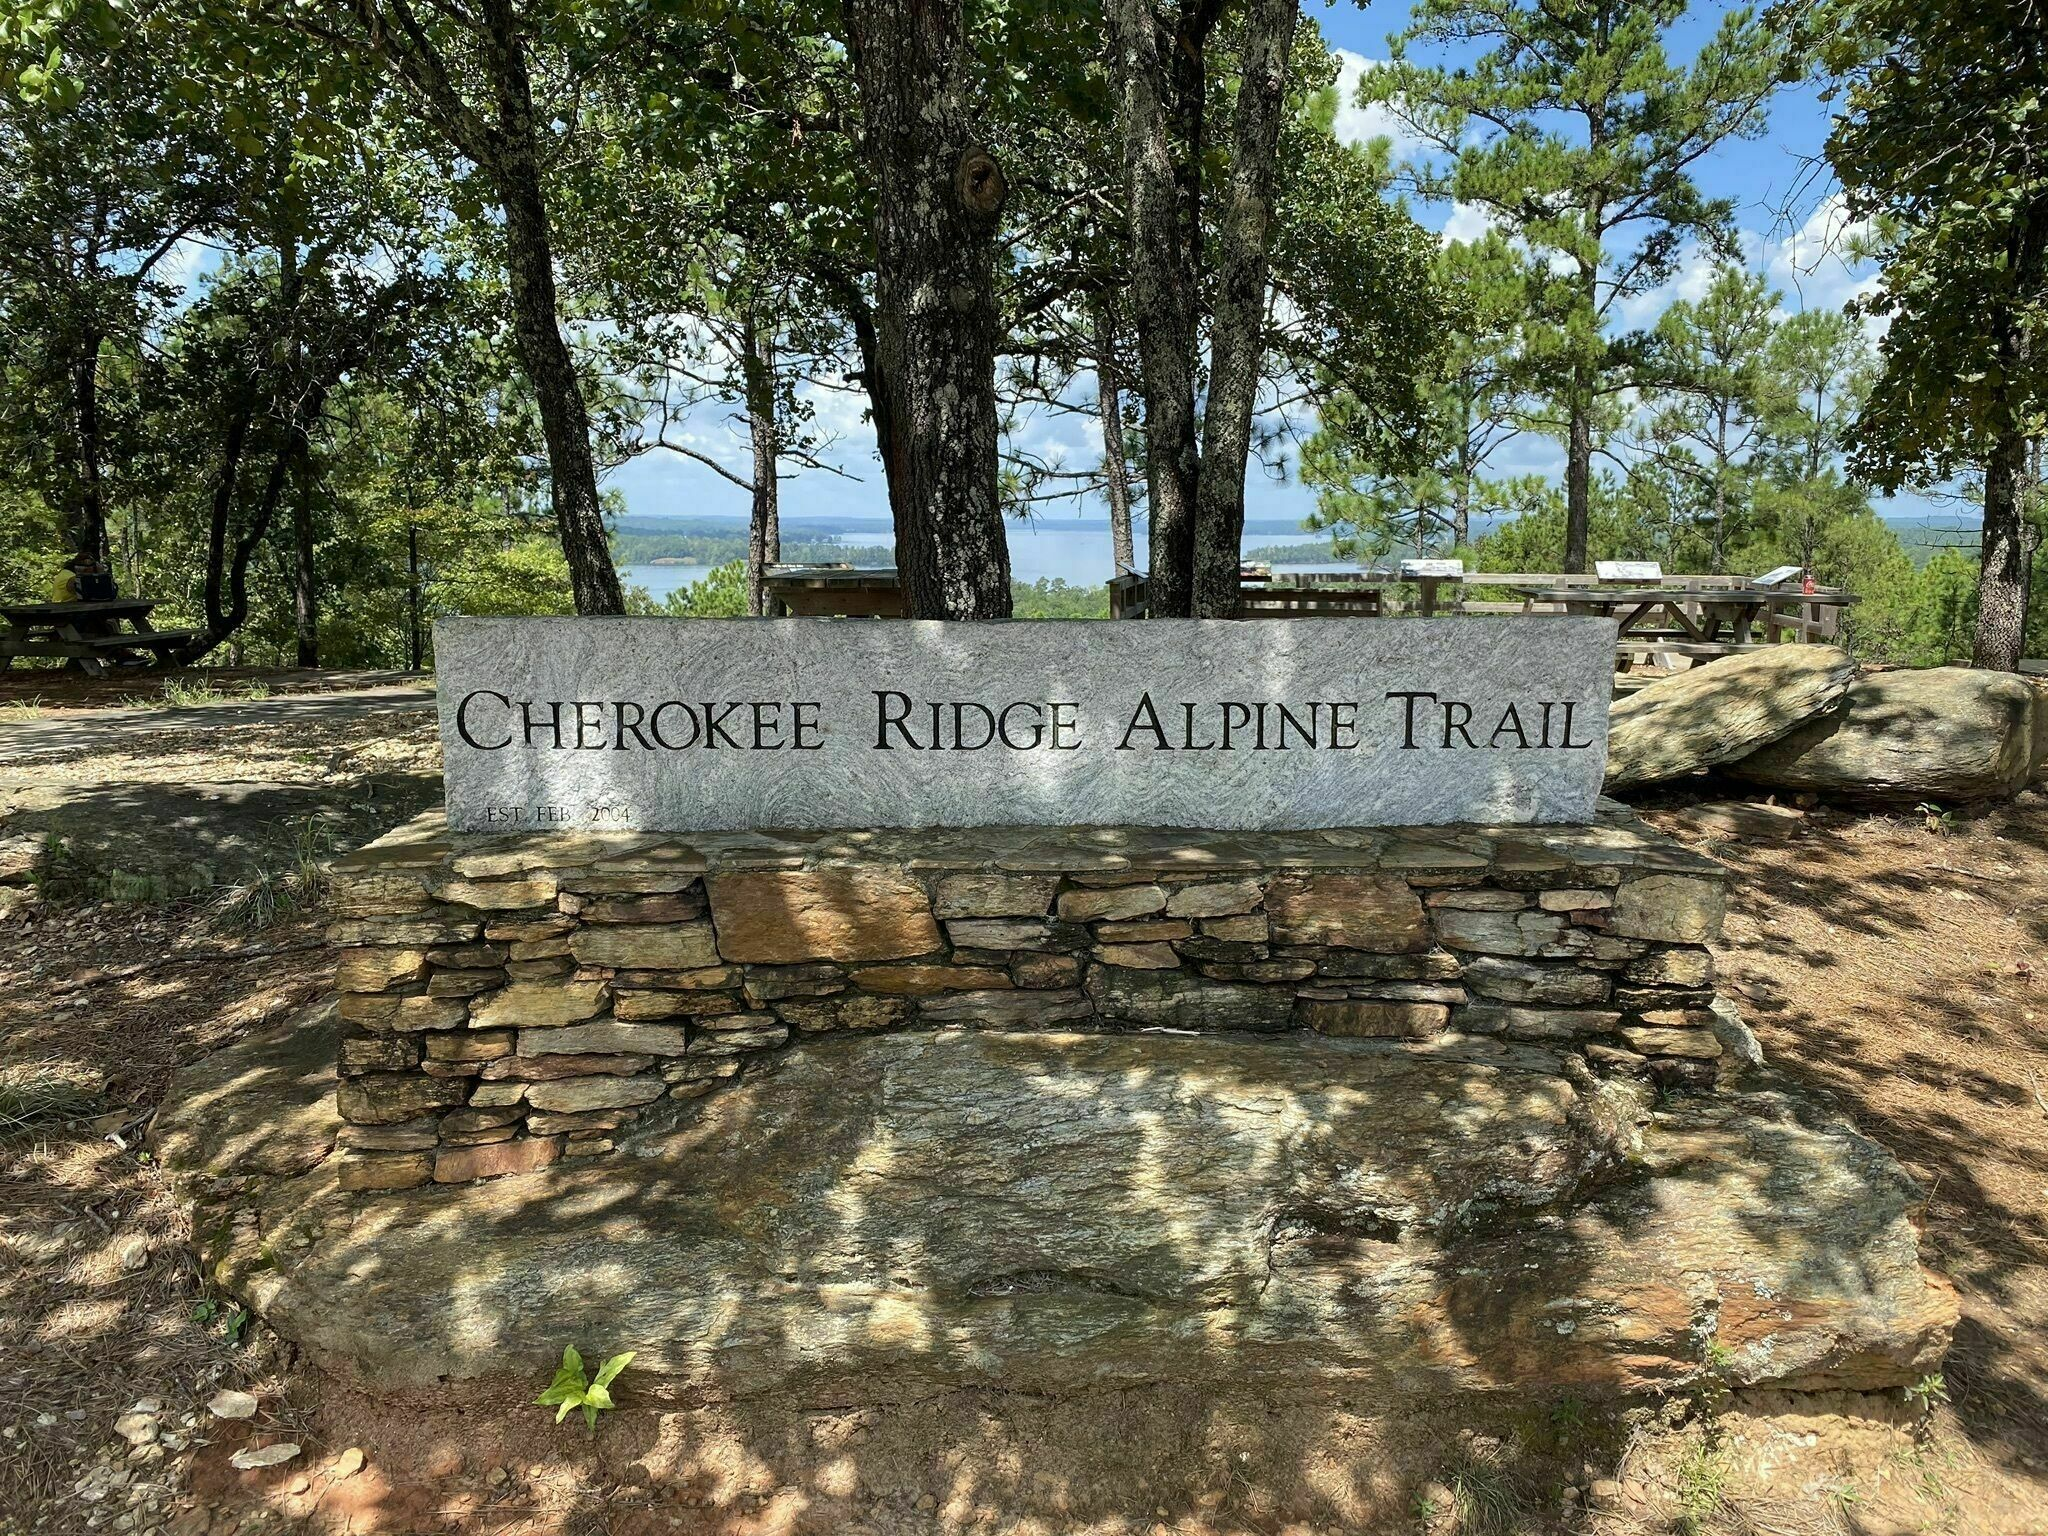 With Incredible Lake Views, The Cherokee Ridge Alpine Trail Is Known As The Most Spectacular Trail In Alabama